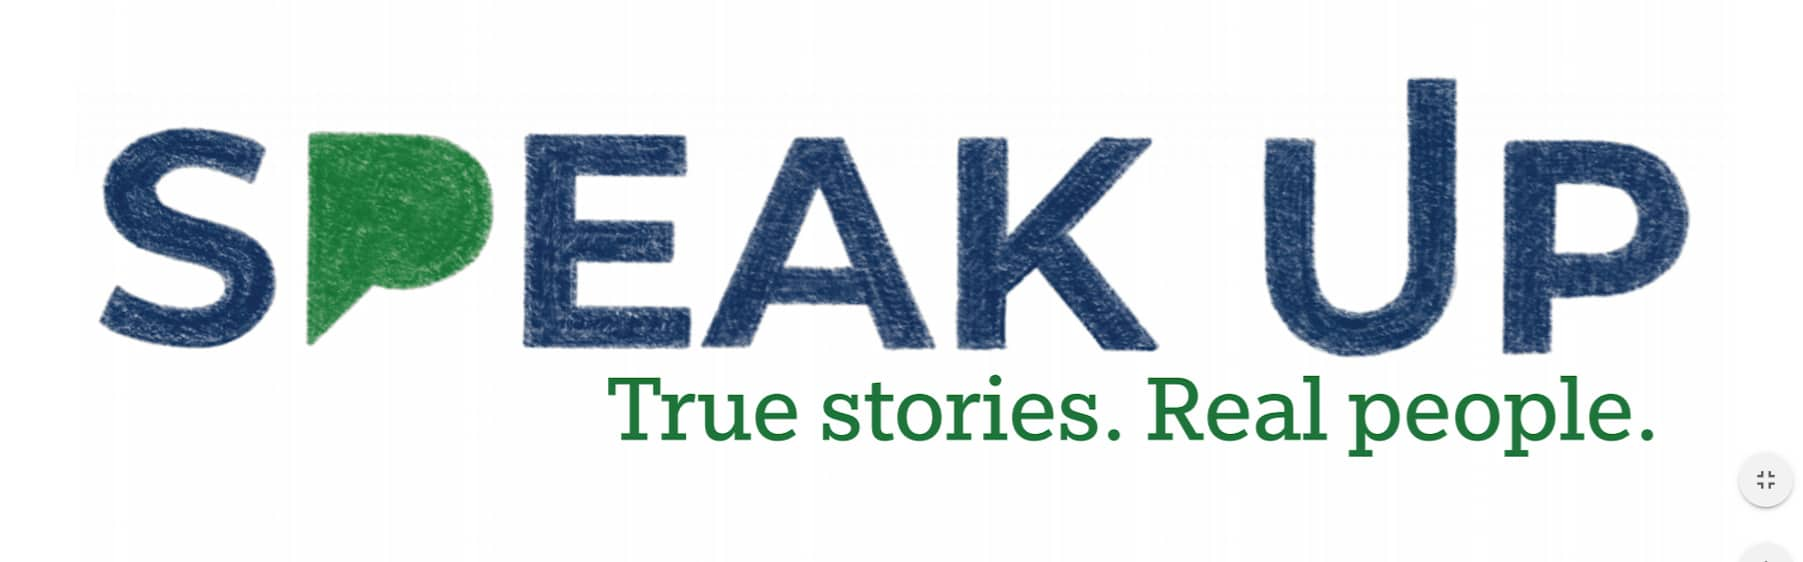 Speak_Up_logo_Matthew_Dicks_storyteller